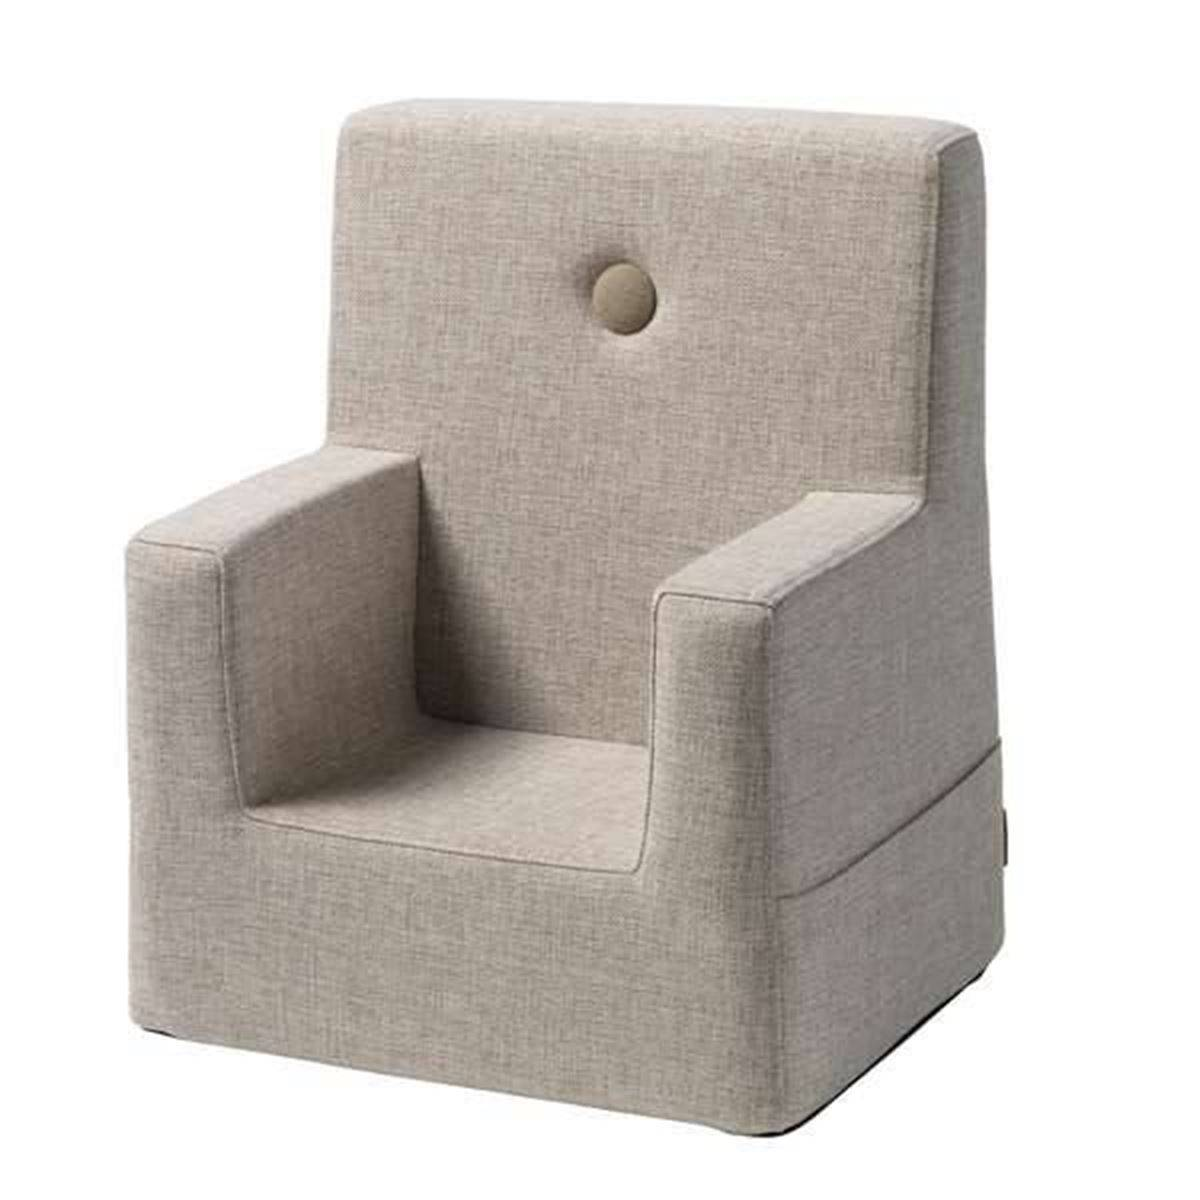 byKlipKlap Kids Chair XL - Beige with sand buttons